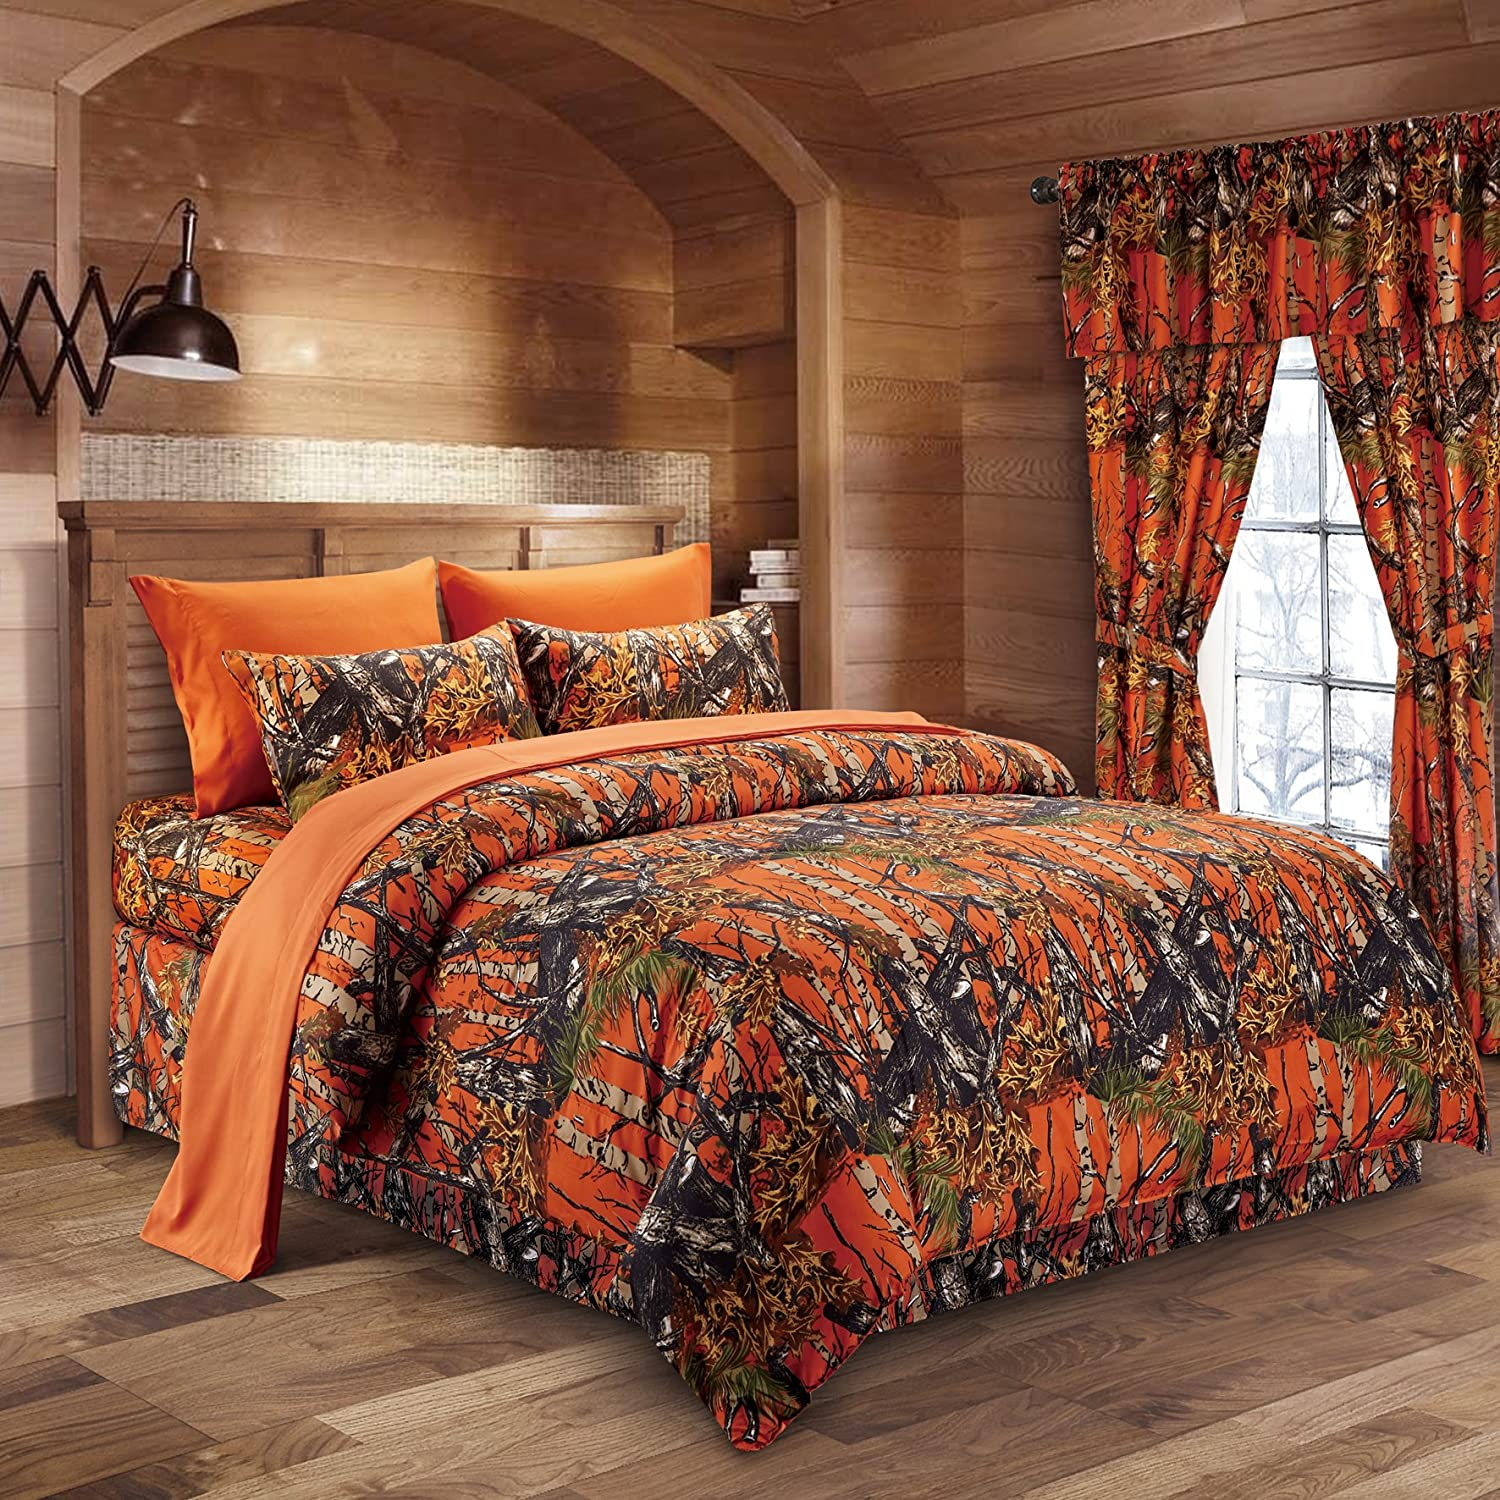 The Woods Orange Camouflage Queen 8pc Premium Luxury Comforter